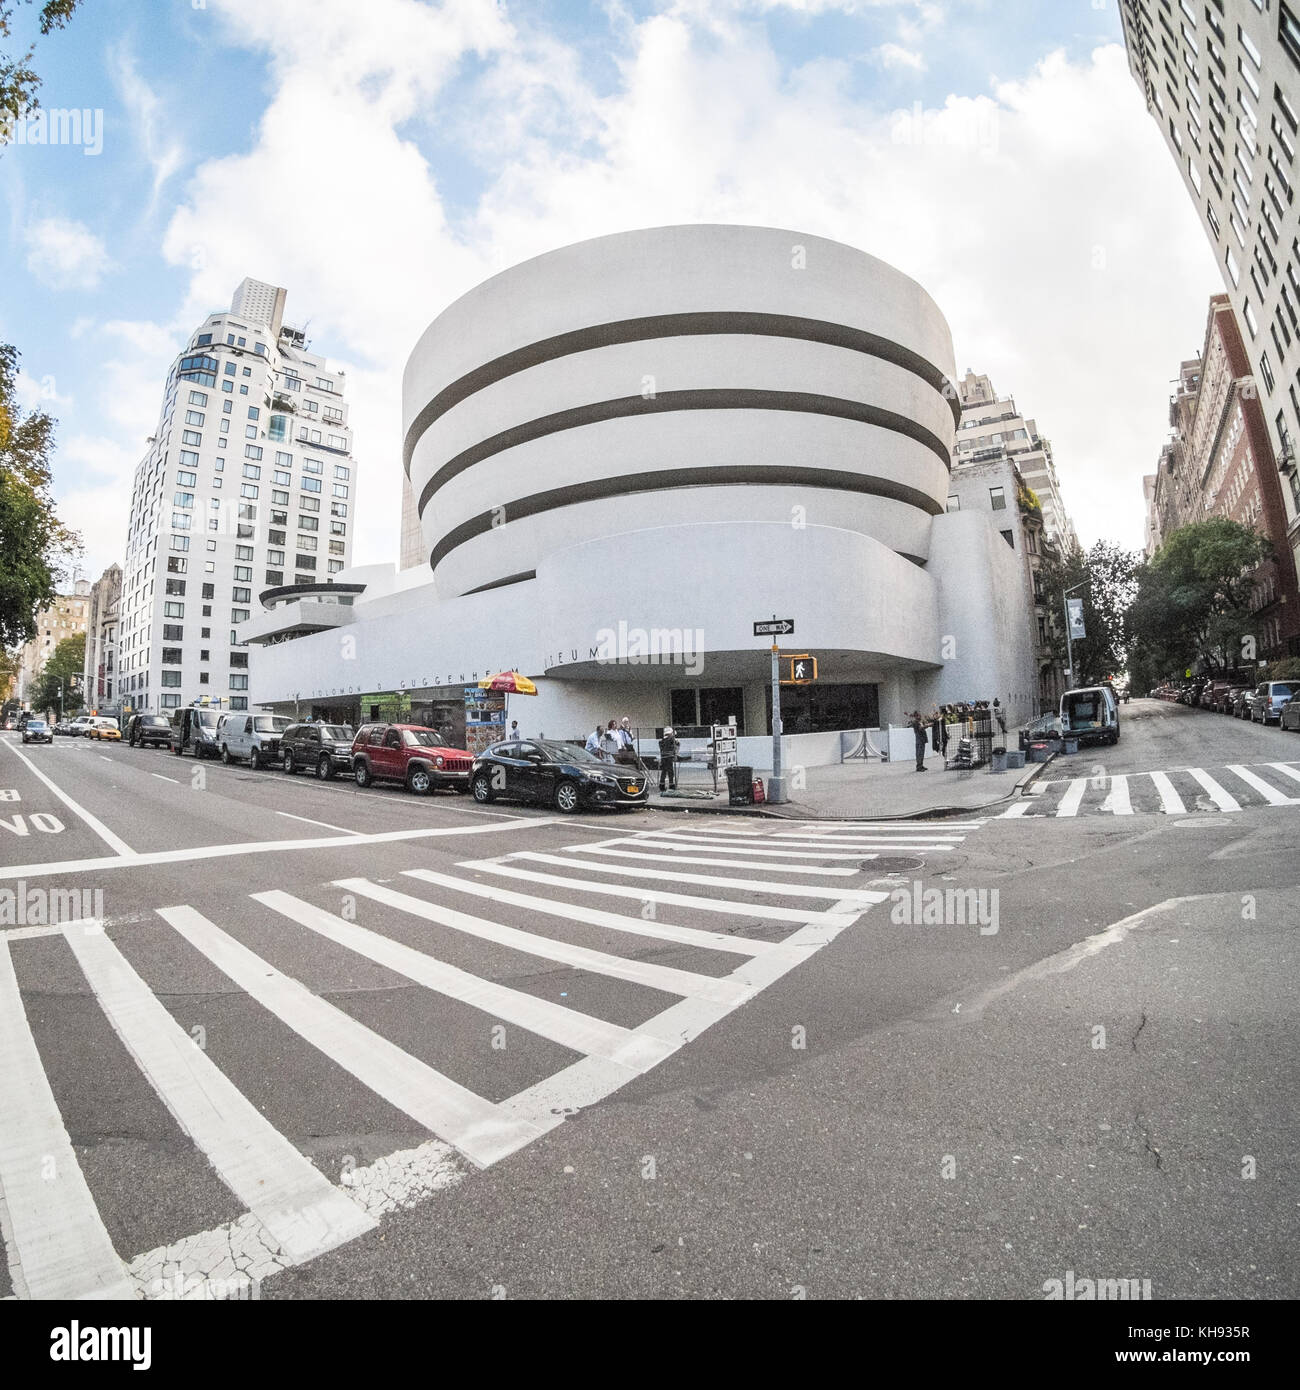 Solomon. R. Guggenheim Museum, 5th Avenue, Manhattan, New York City, NY, United States of America. U.S.A. - Stock Image